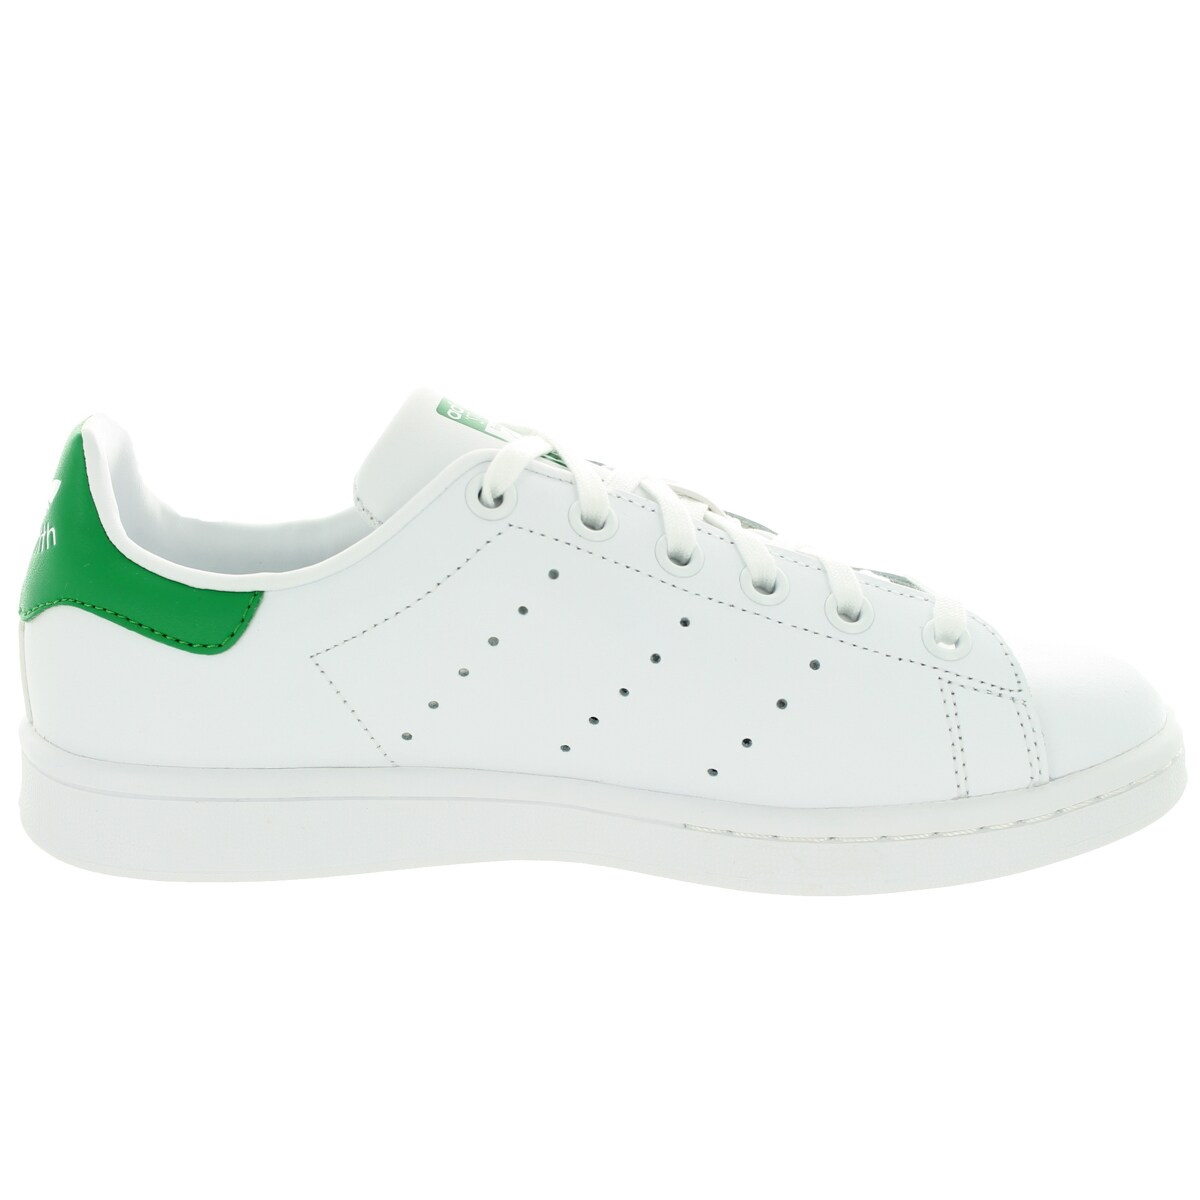 370c9c6b9 Shop Adidas Kids Stan Smith J Originals White Leather Casual Shoes - Free  Shipping Today - Overstock.com - 13394105